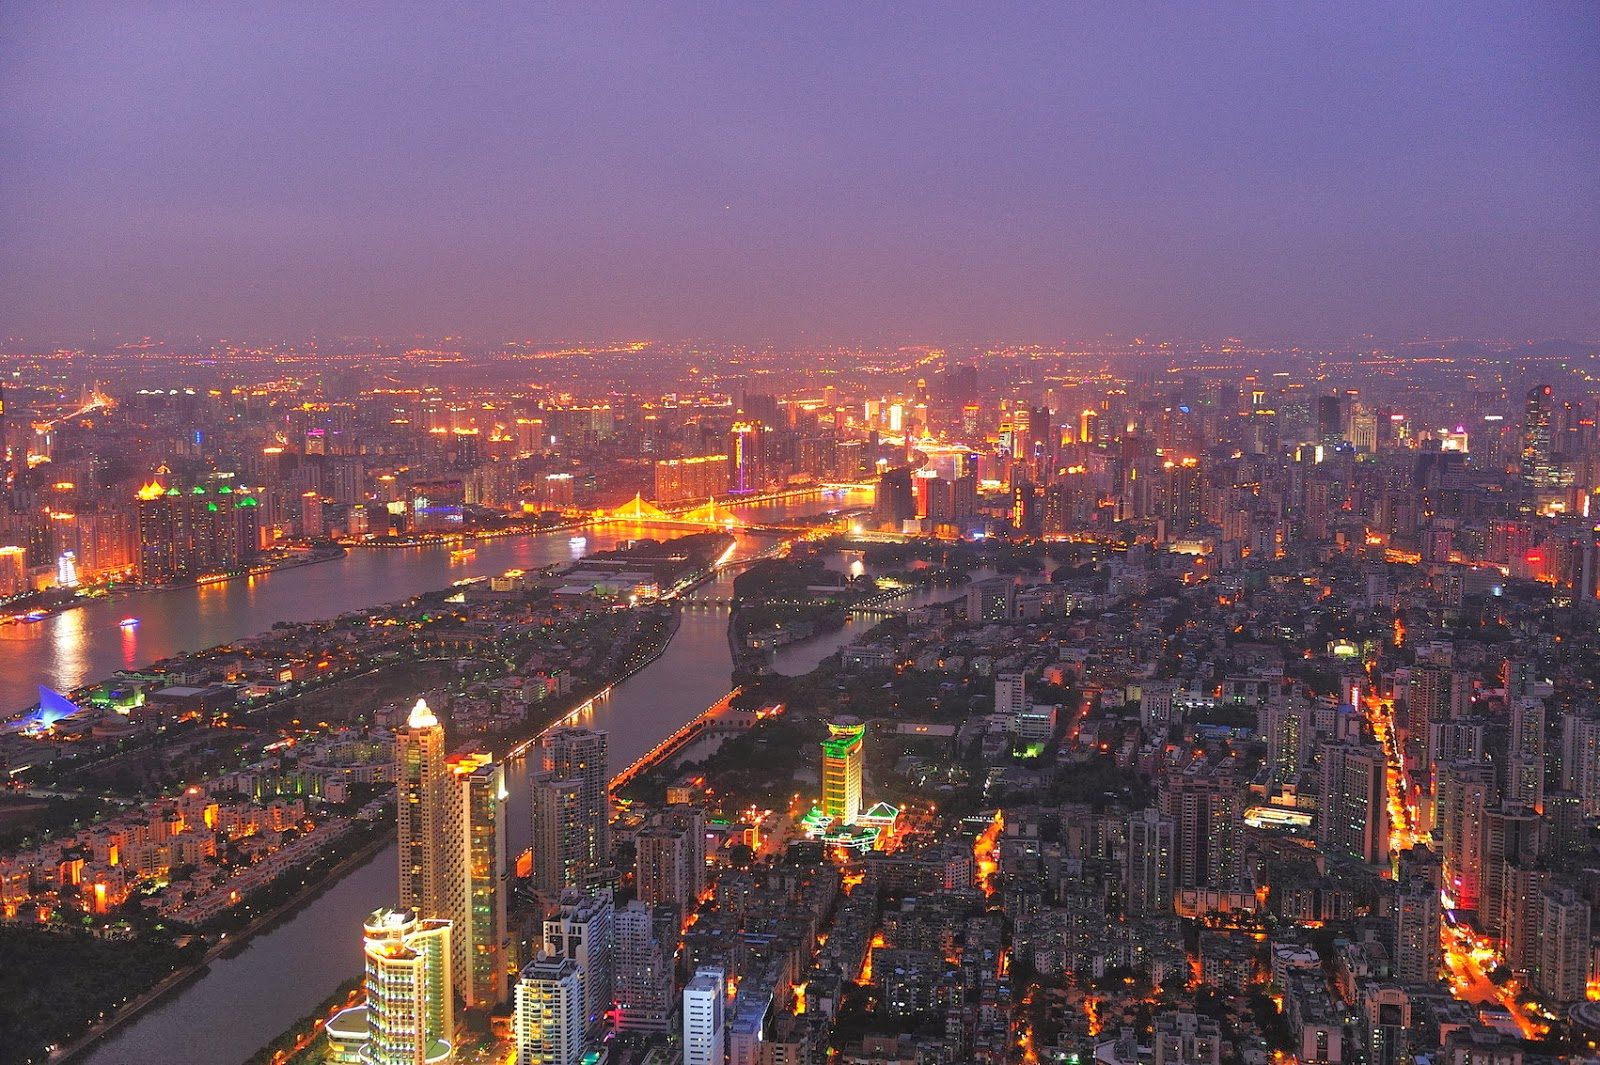 Cities Of The World Wallpapers Hd Part 7 Guangzhou